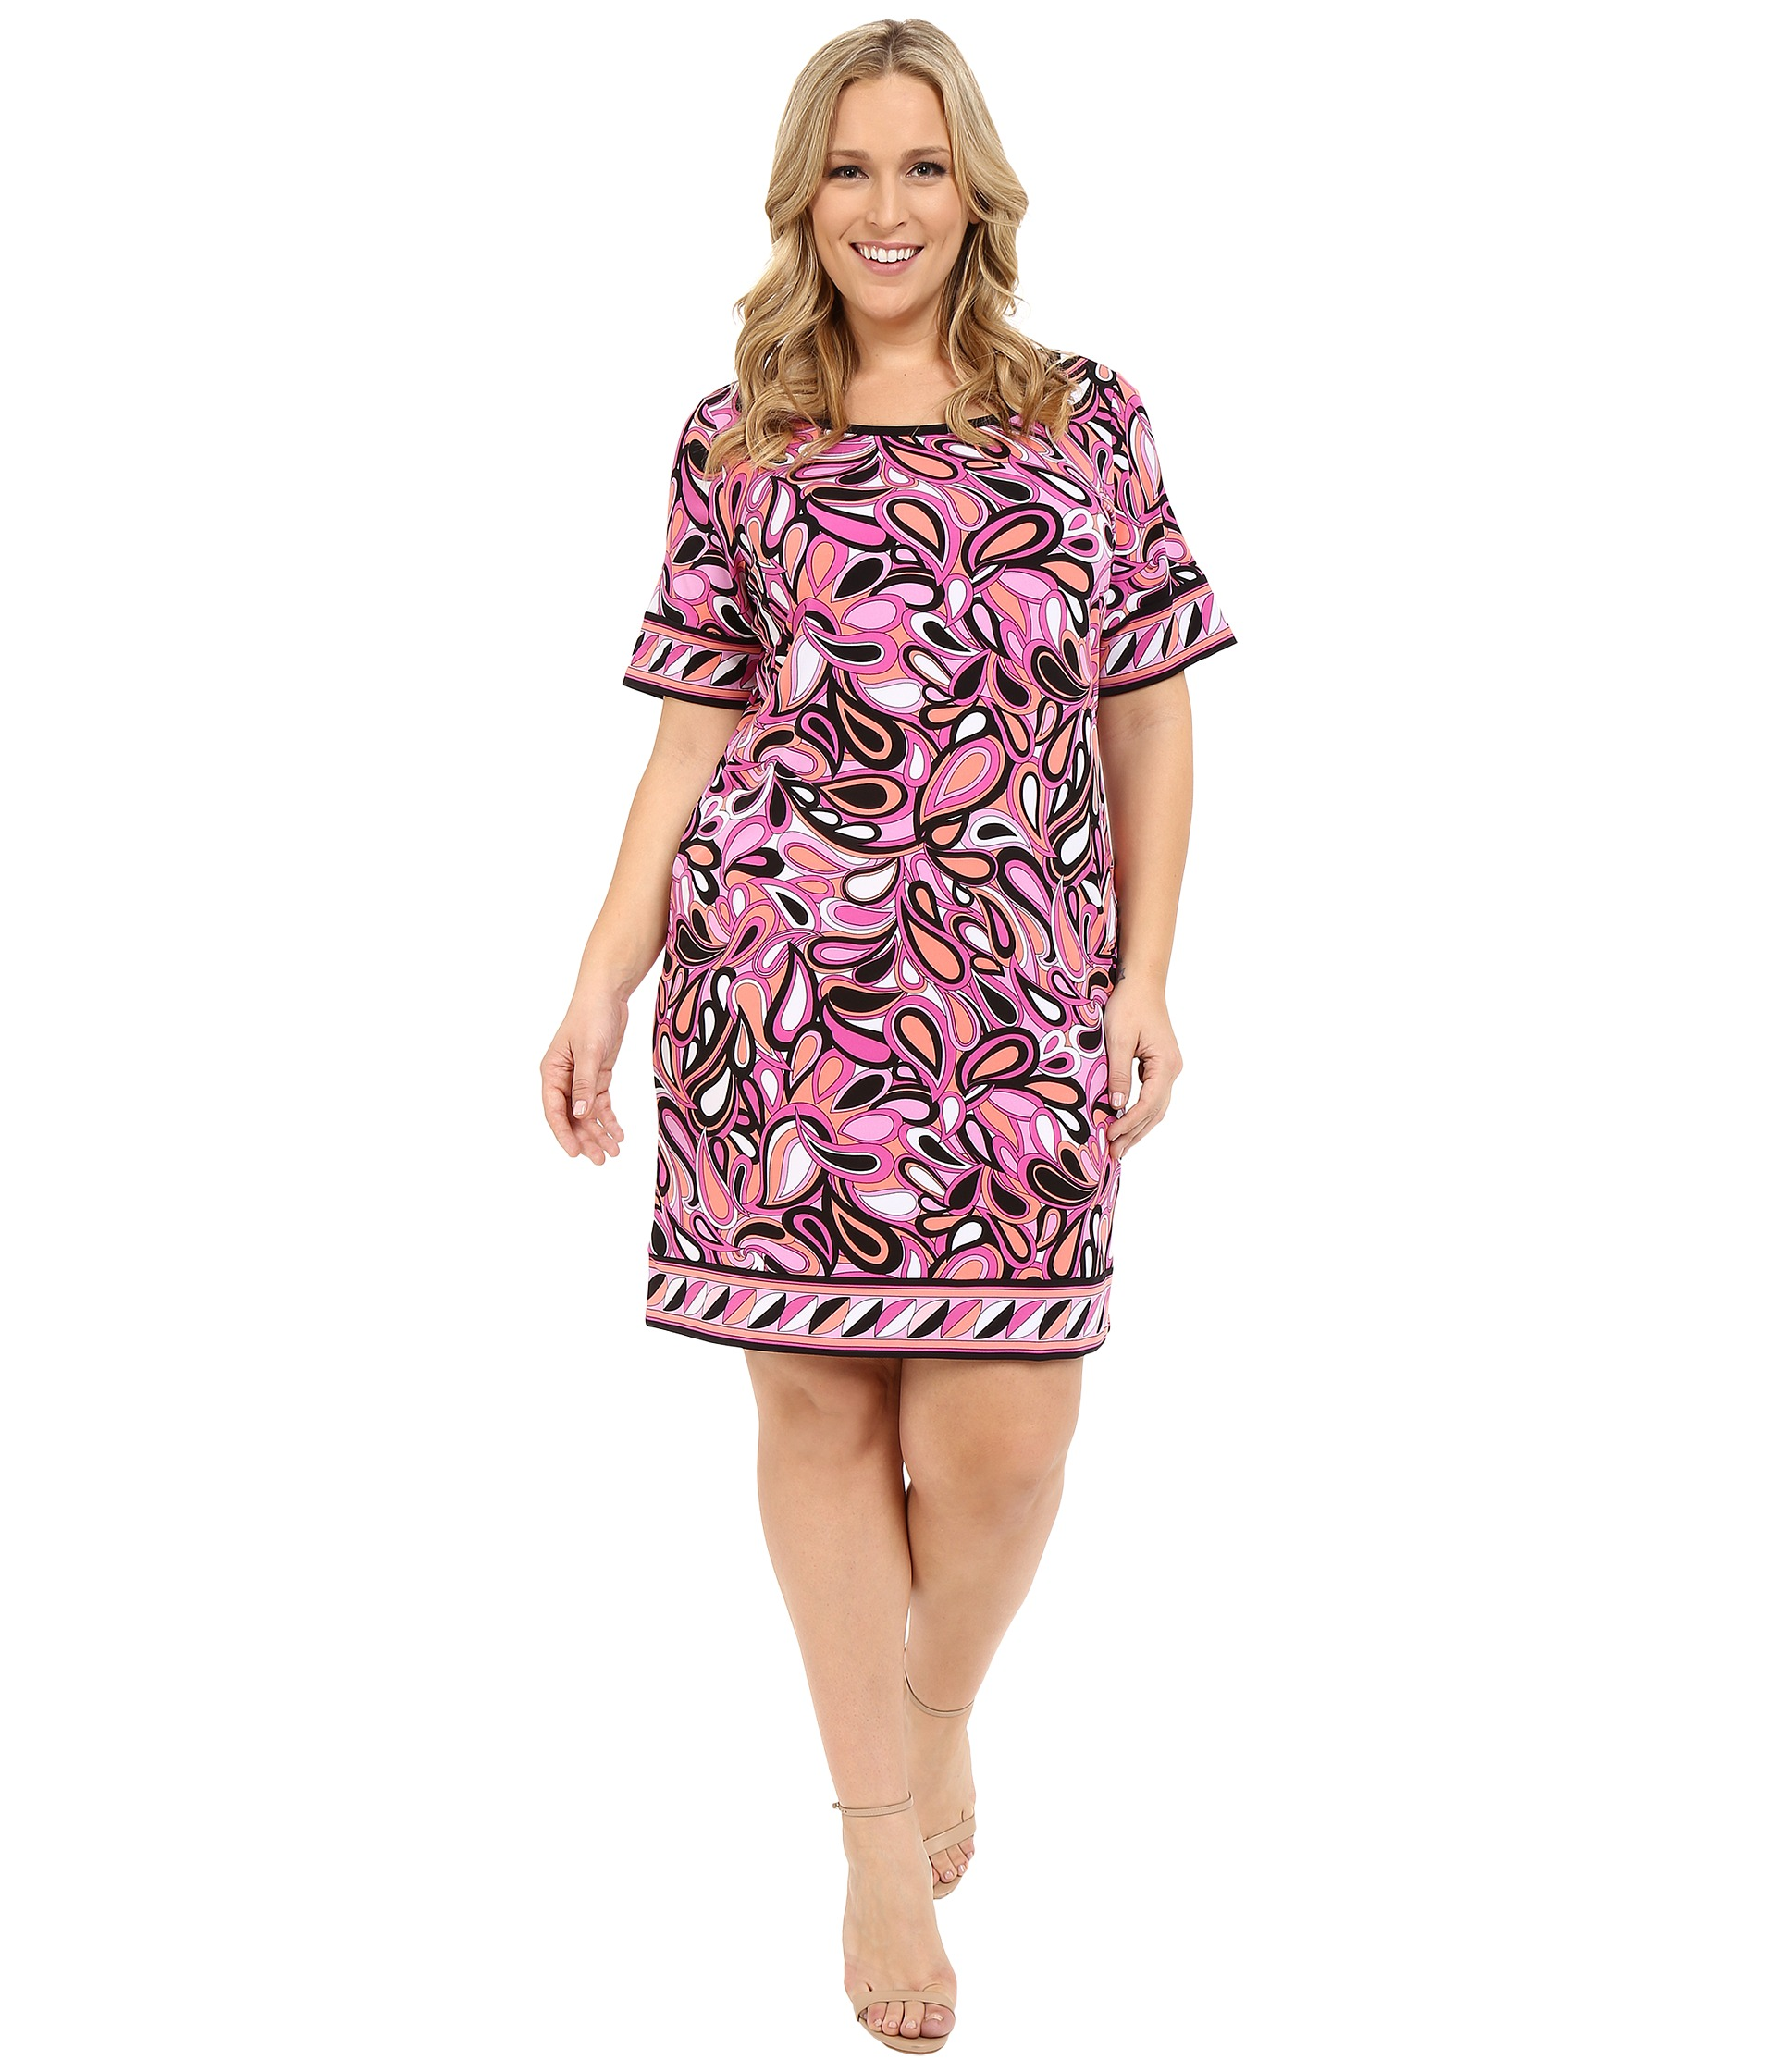 Zappos Womens Plus Size Dresses 98